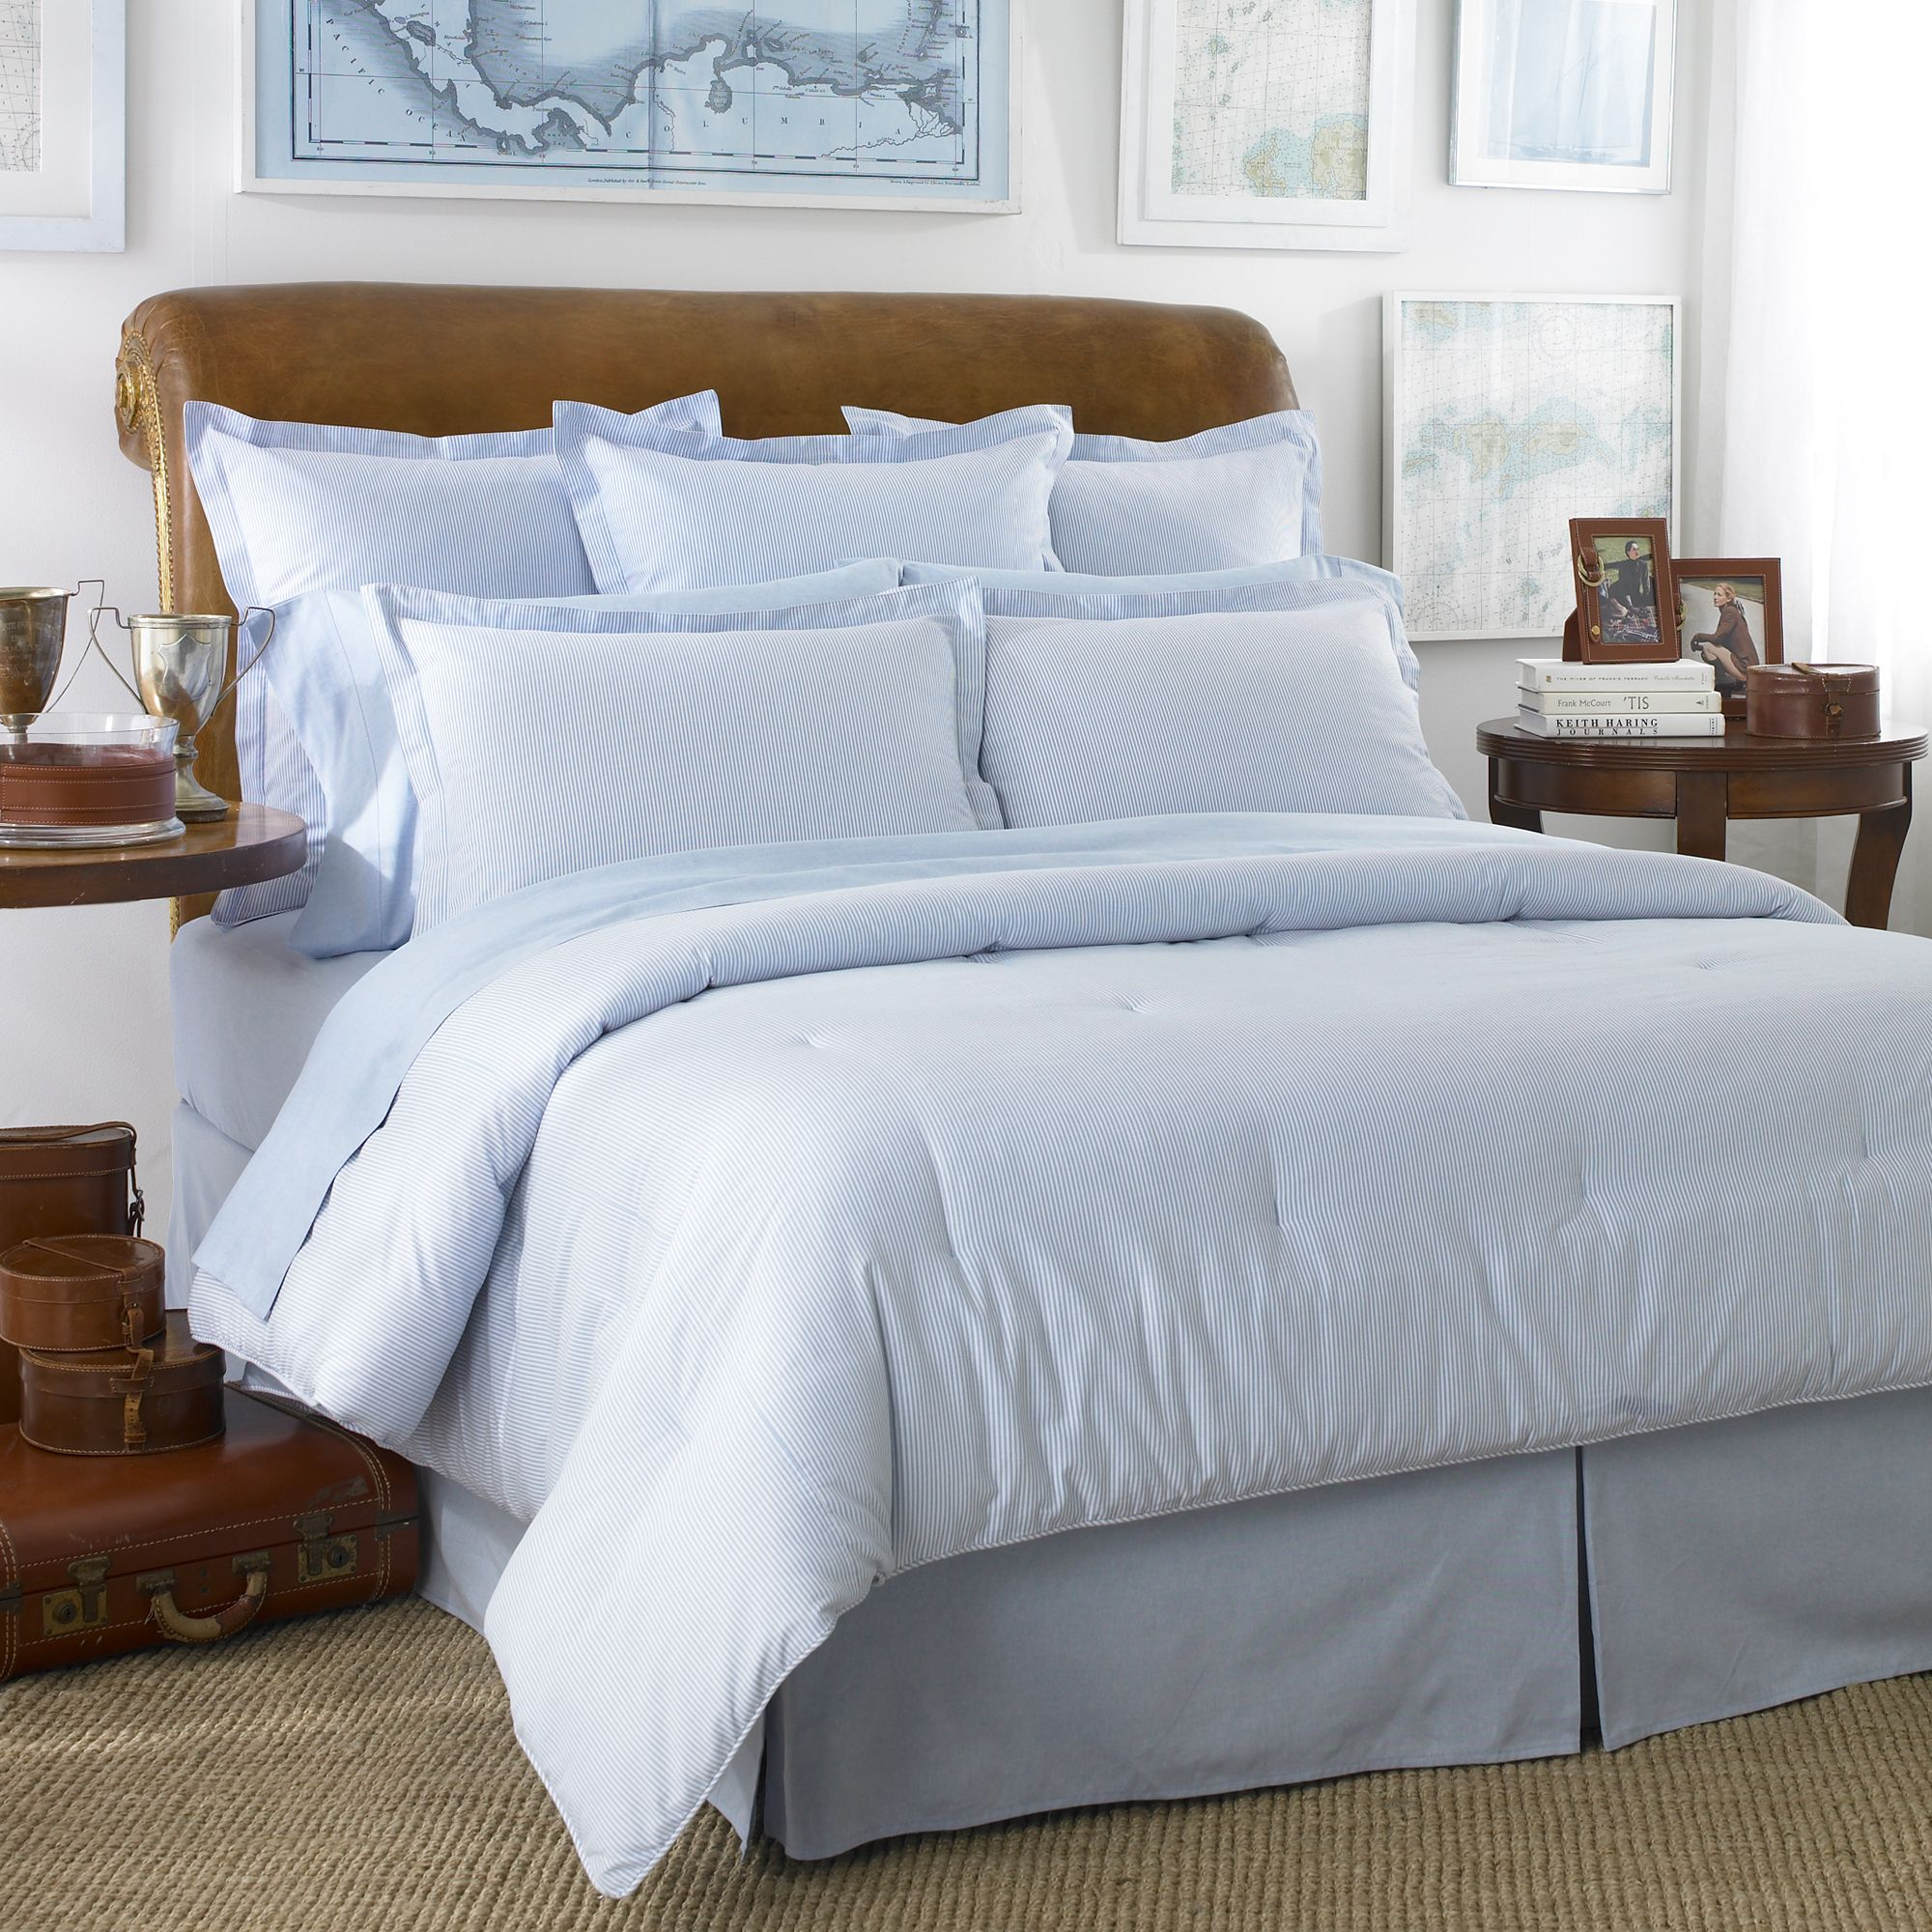 Ralph Lauren Home Oxford Bedding Range In Blue House of Fraser